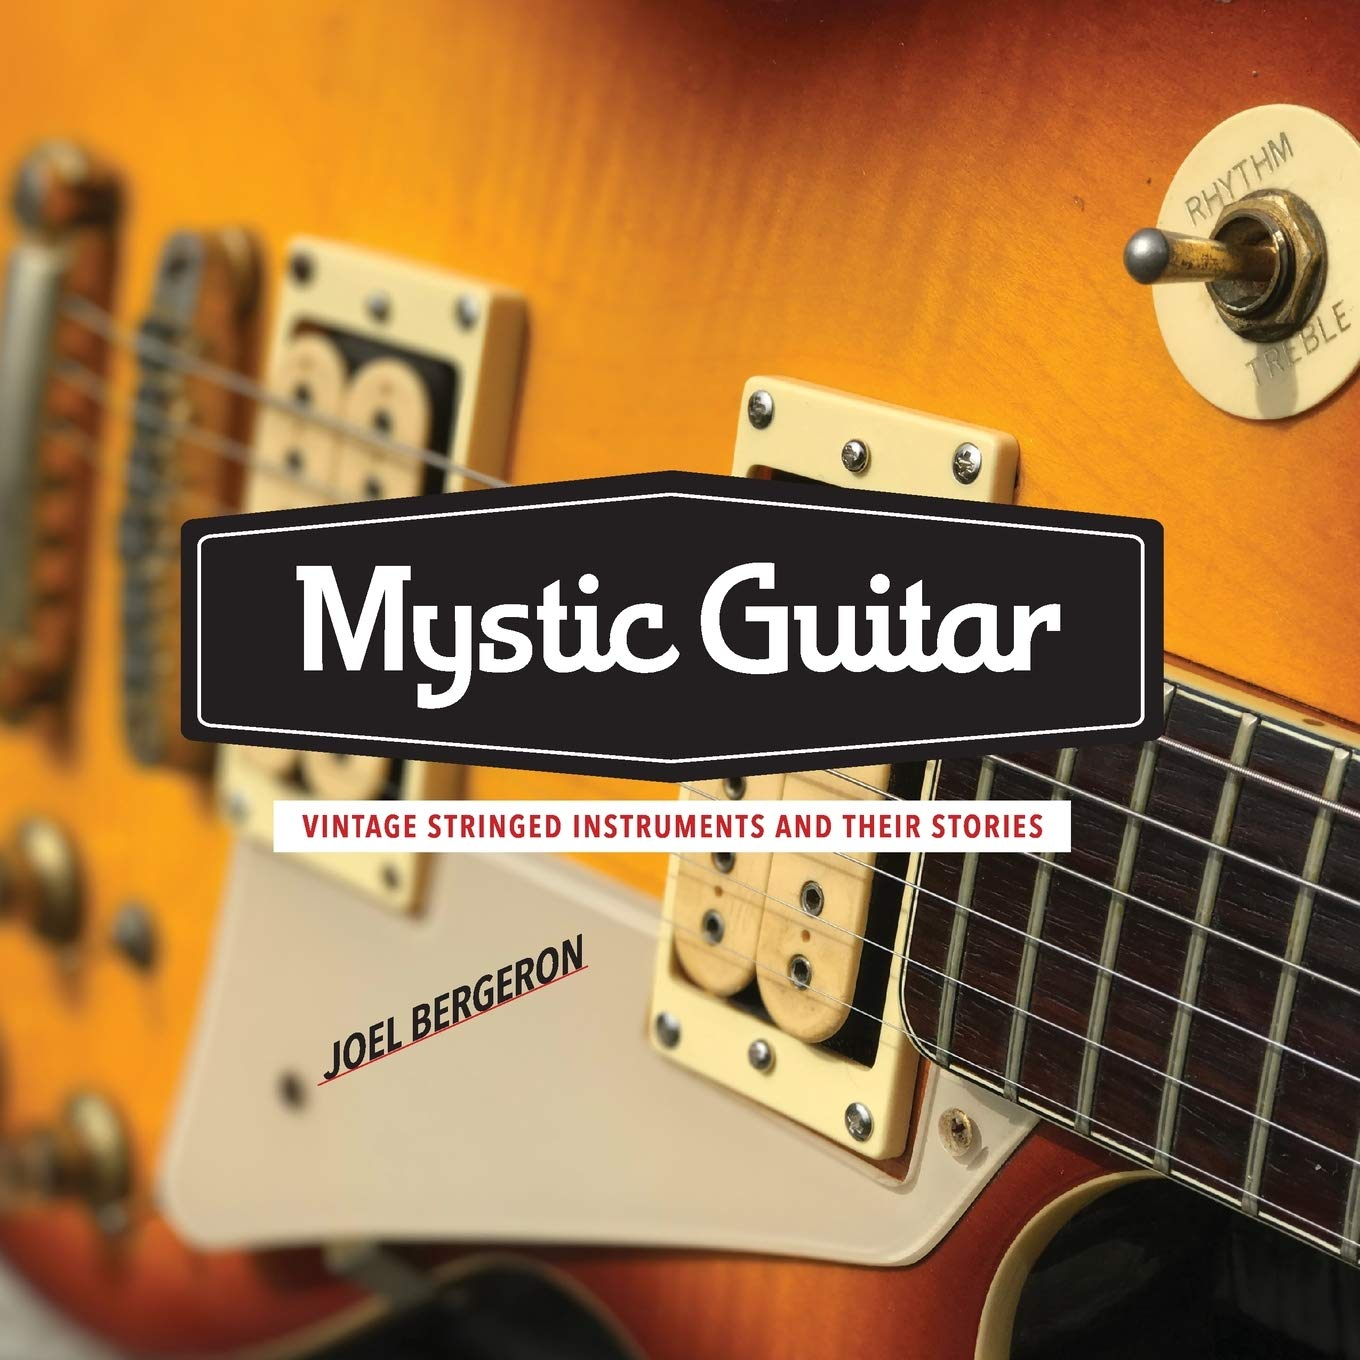 Mystic Guitar: Vintage Stringed Instruments and Their Stories